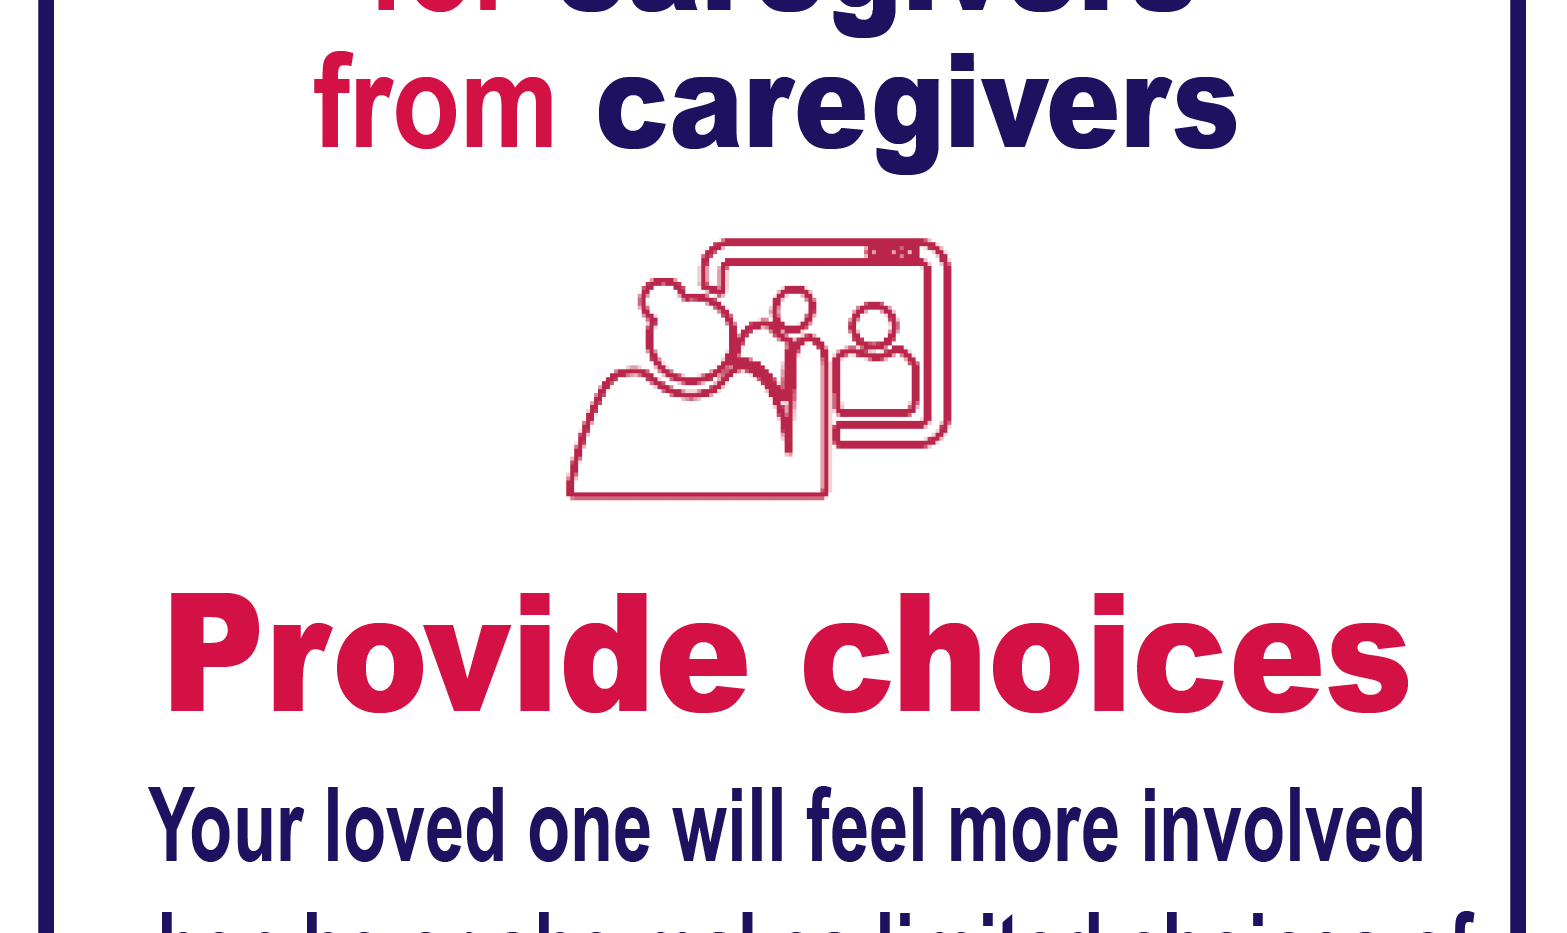 ADAW_Caregiver_Tips_CheckIn.png